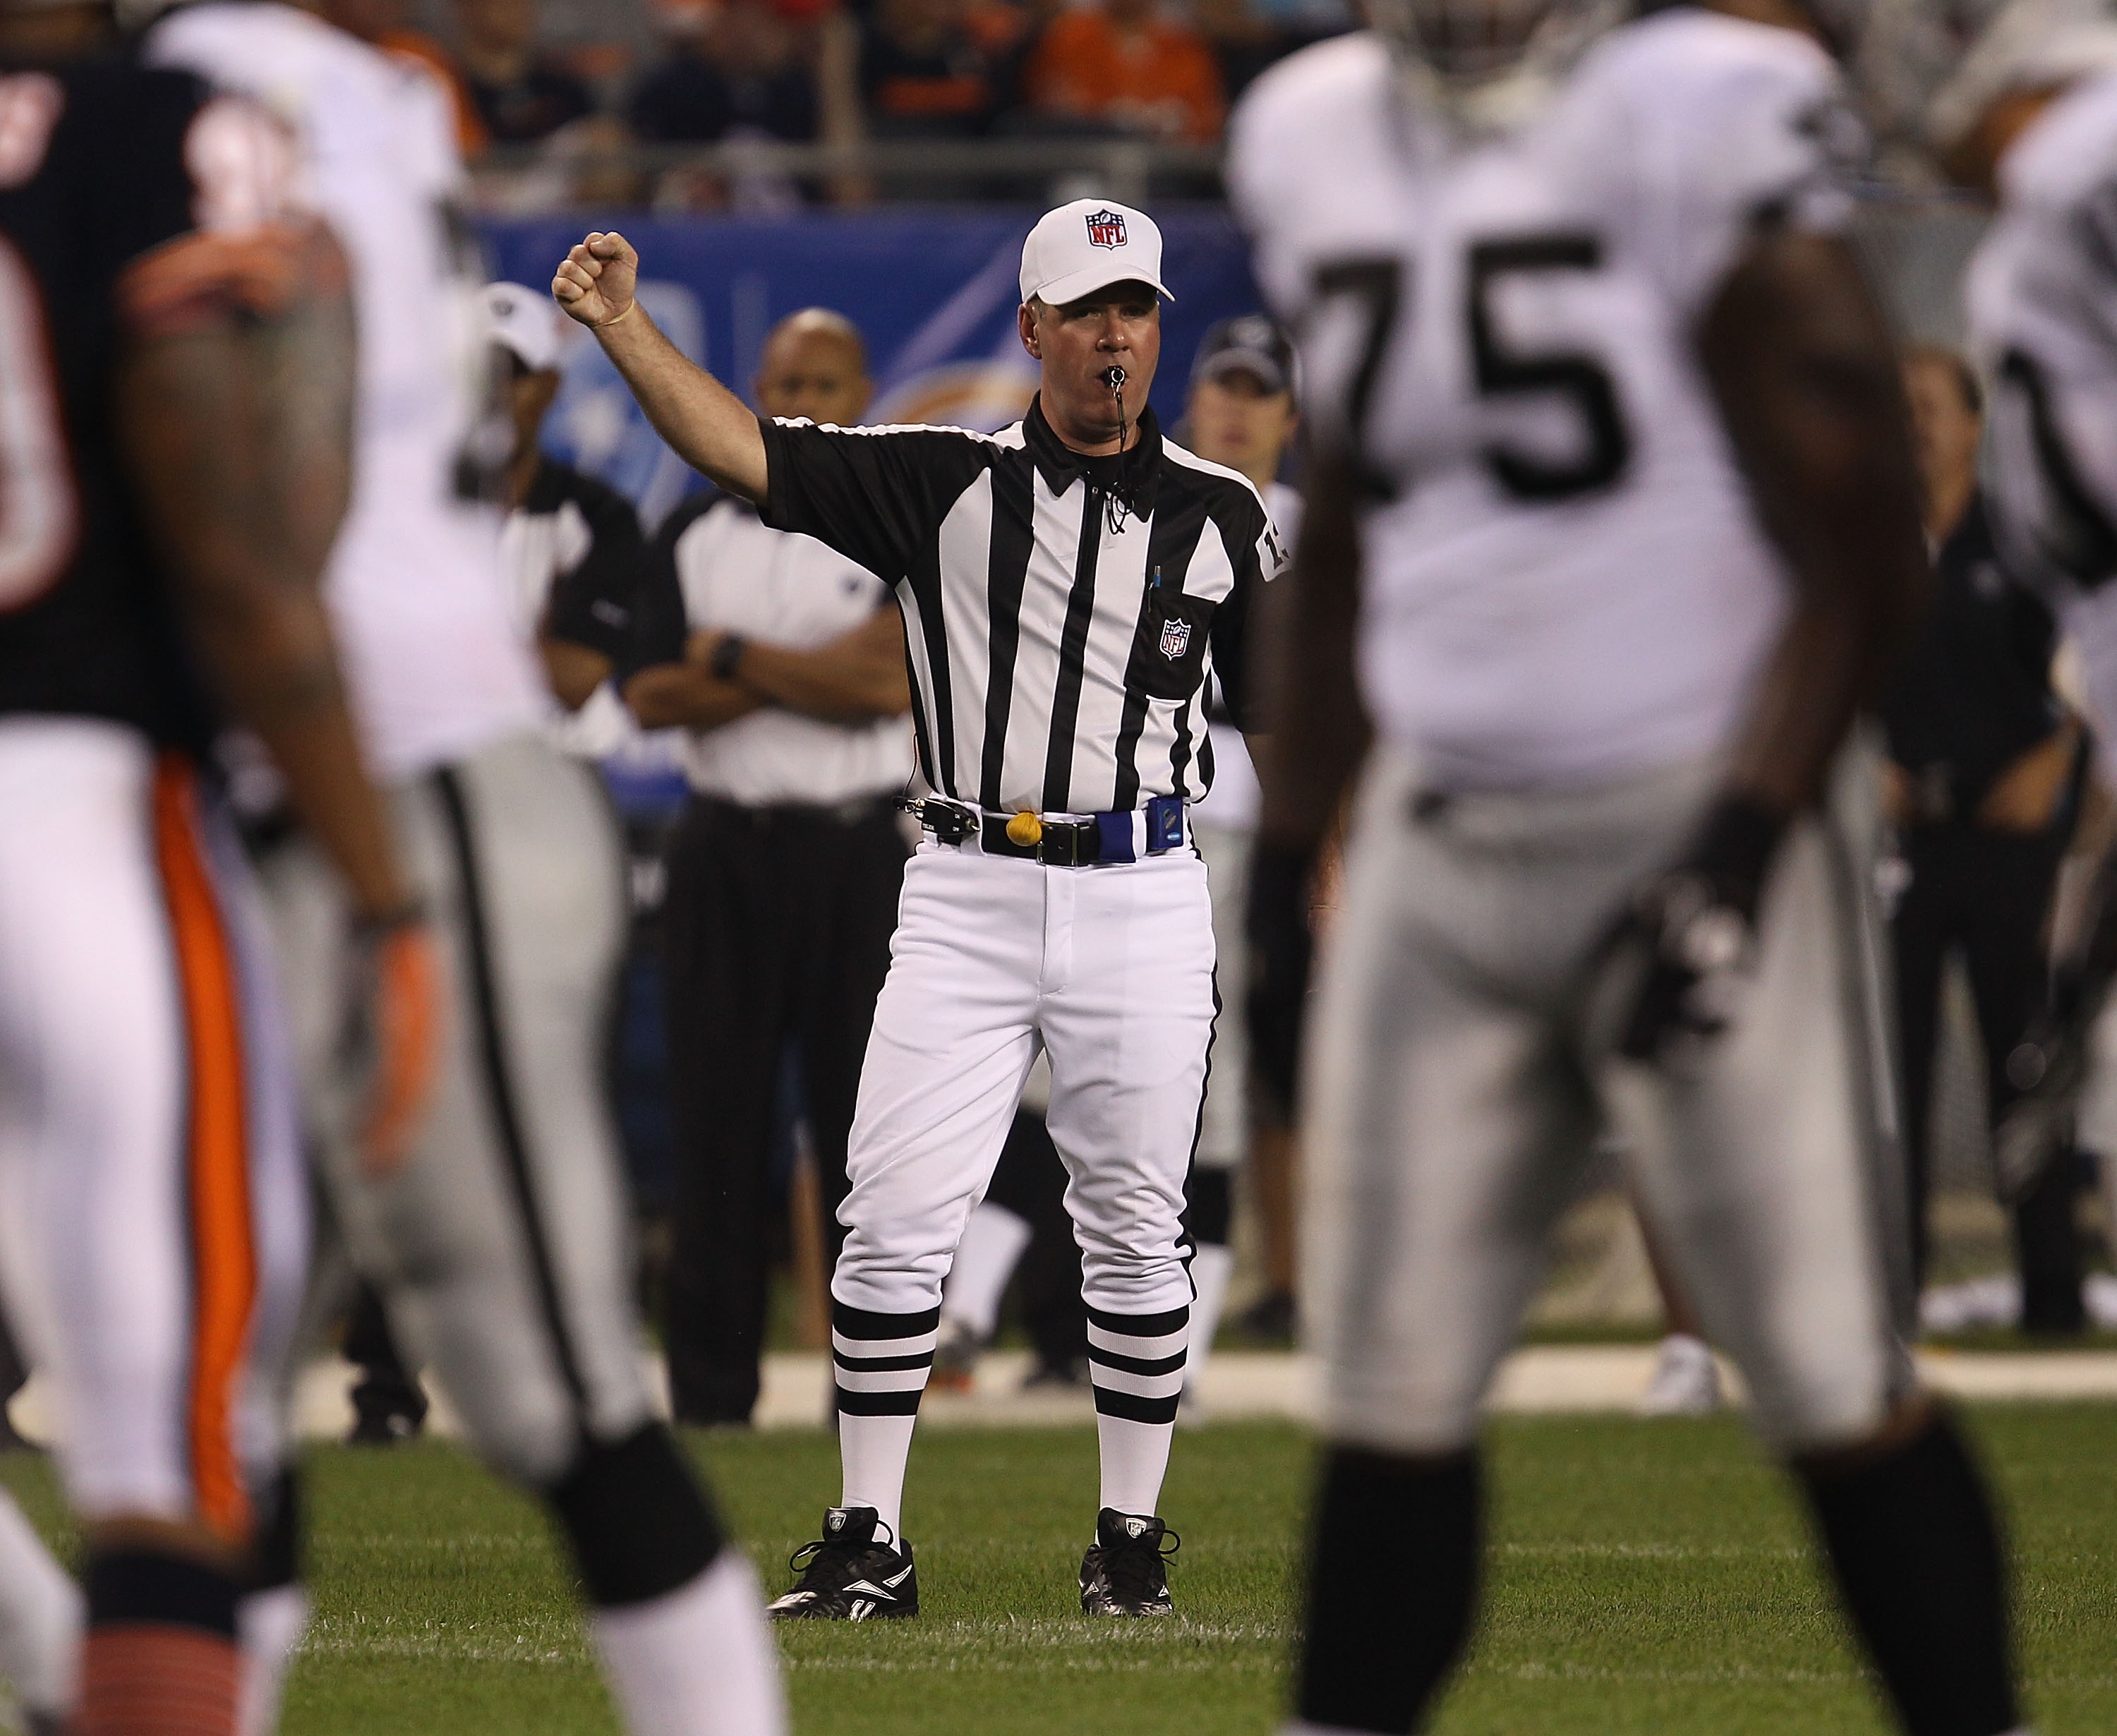 CHICAGO - AUGUST 21: Referee John Parry #132 signals for play to begin between the Chicago Bears and the Oakland Raiders during a preseason game at Soldier Field on August 21, 2010 in Chicago, Illinois. The Raiders defeated the Bears 32-17. (Photo by Jona